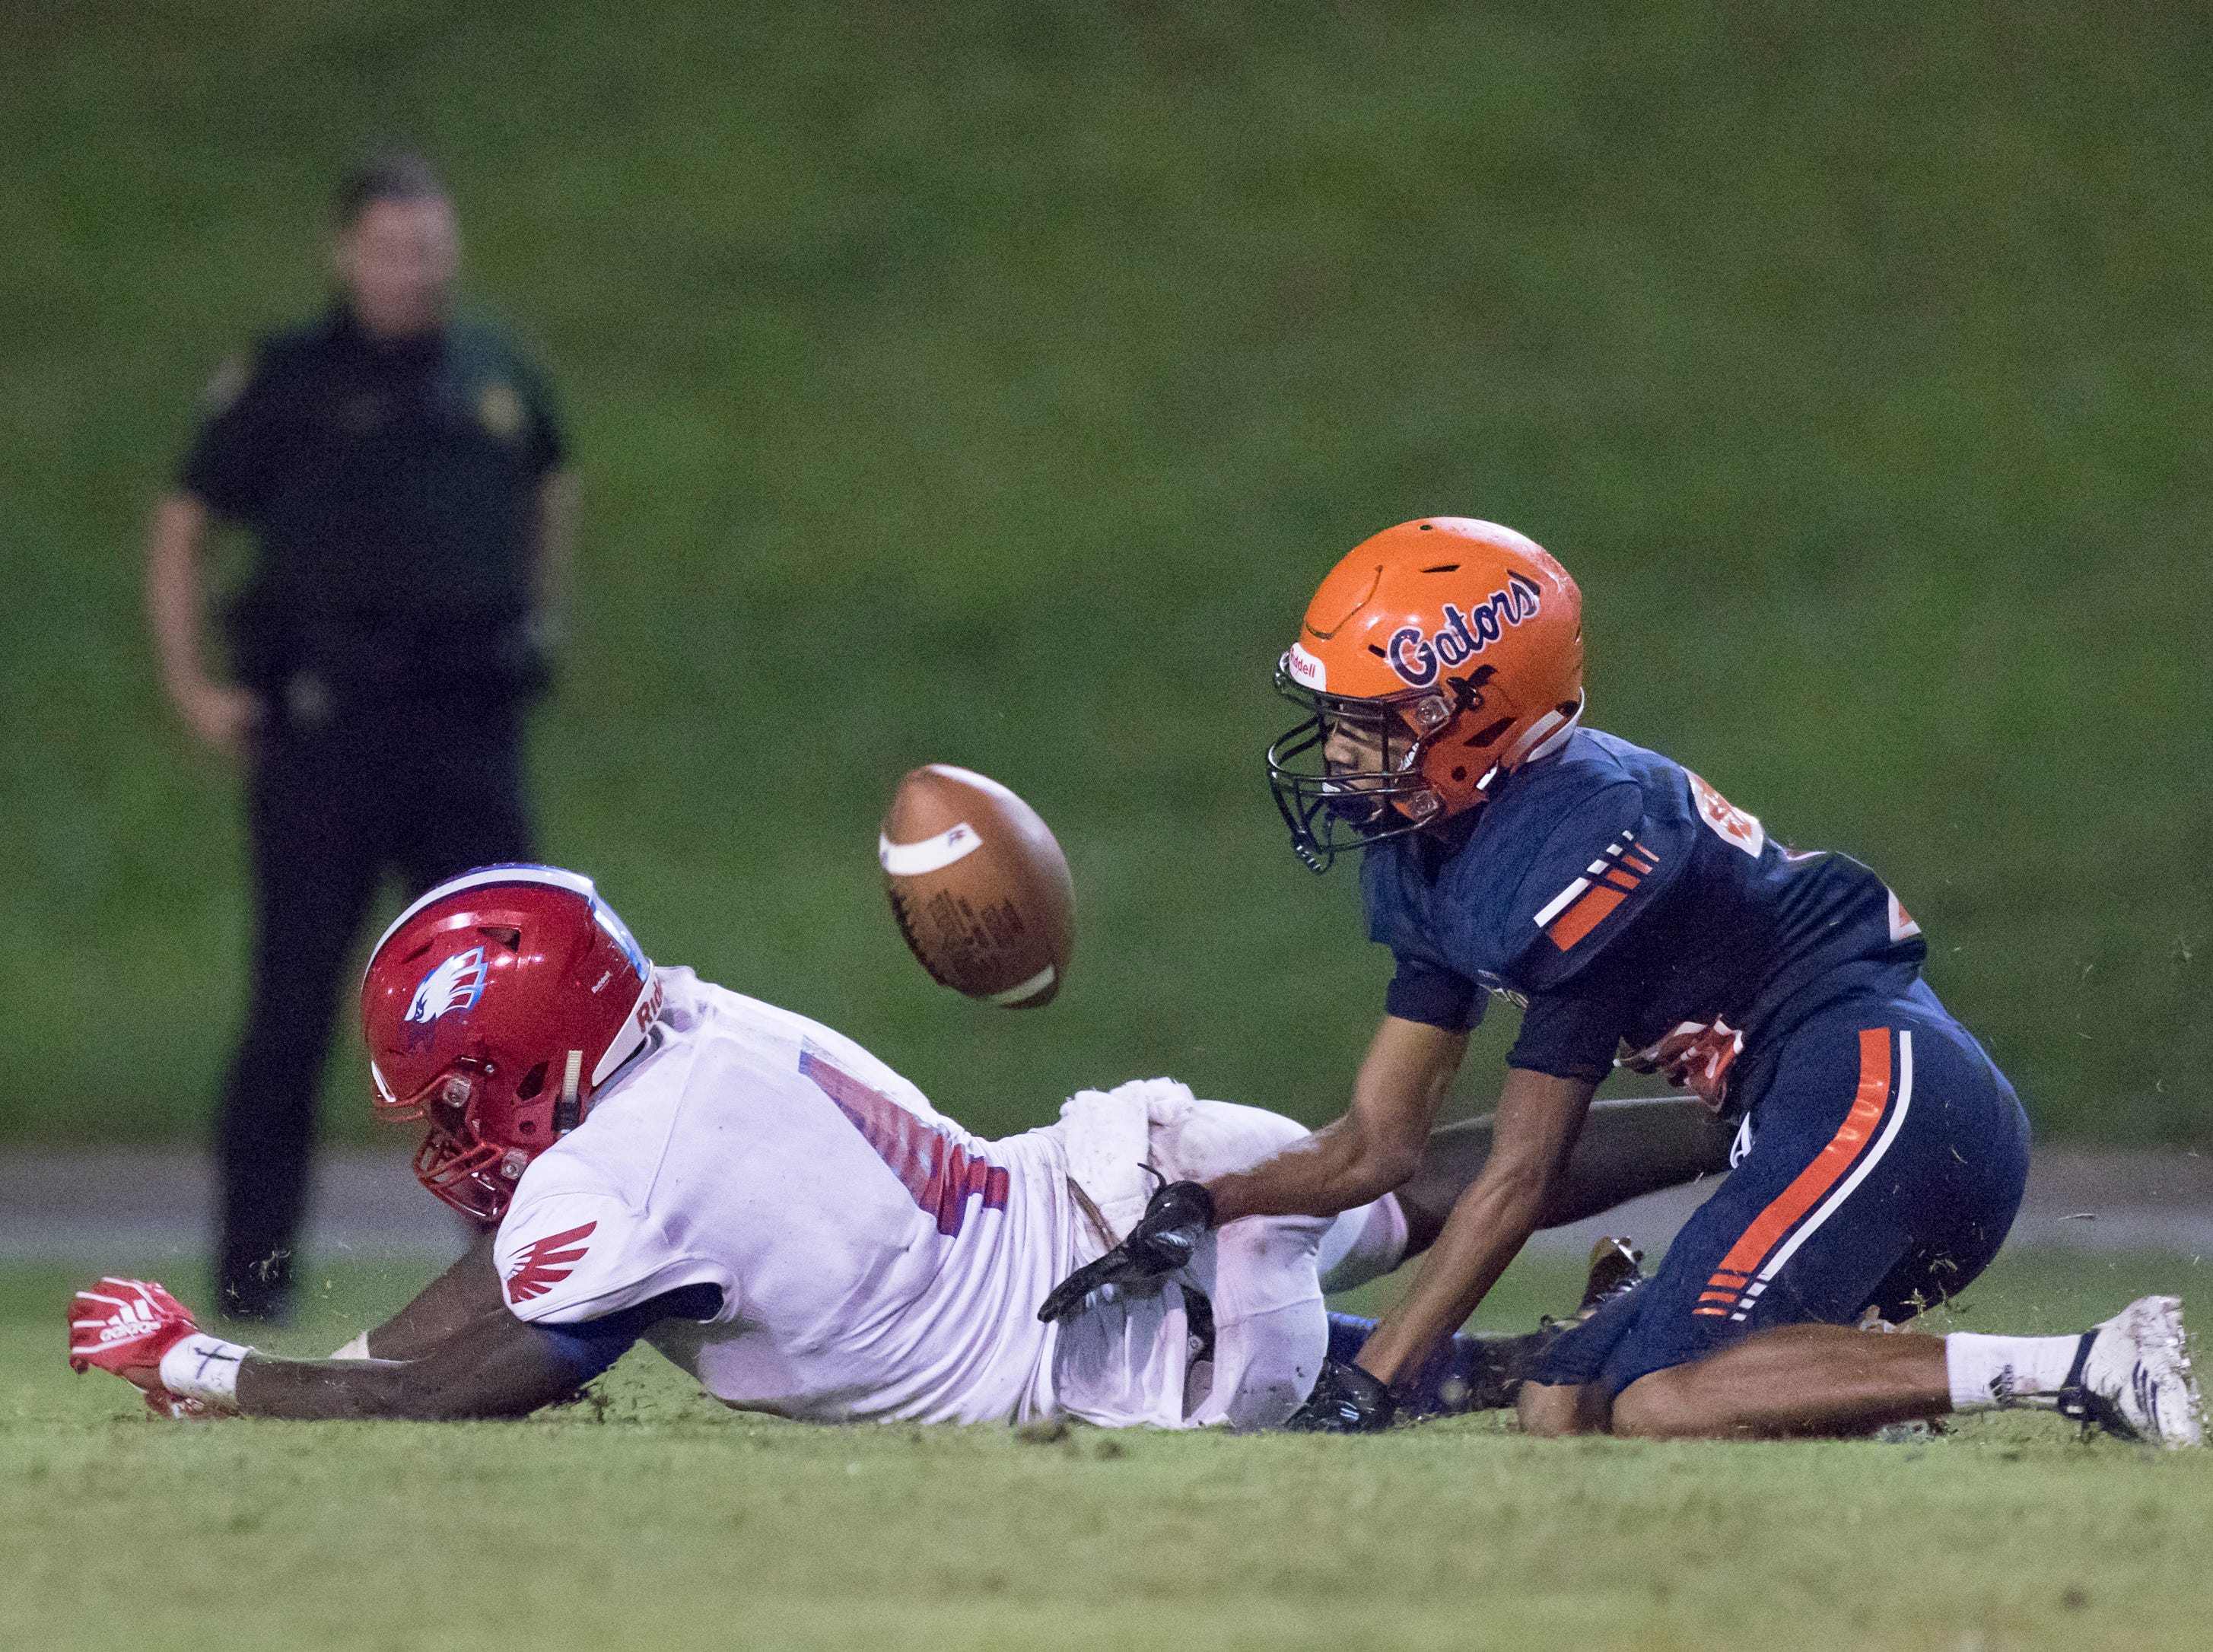 Vontarious Hill (4) can't reel in a pass during the Pine Forest vs Escambia football game at Escambia High School in Pensacola on Friday, September 28, 2018.